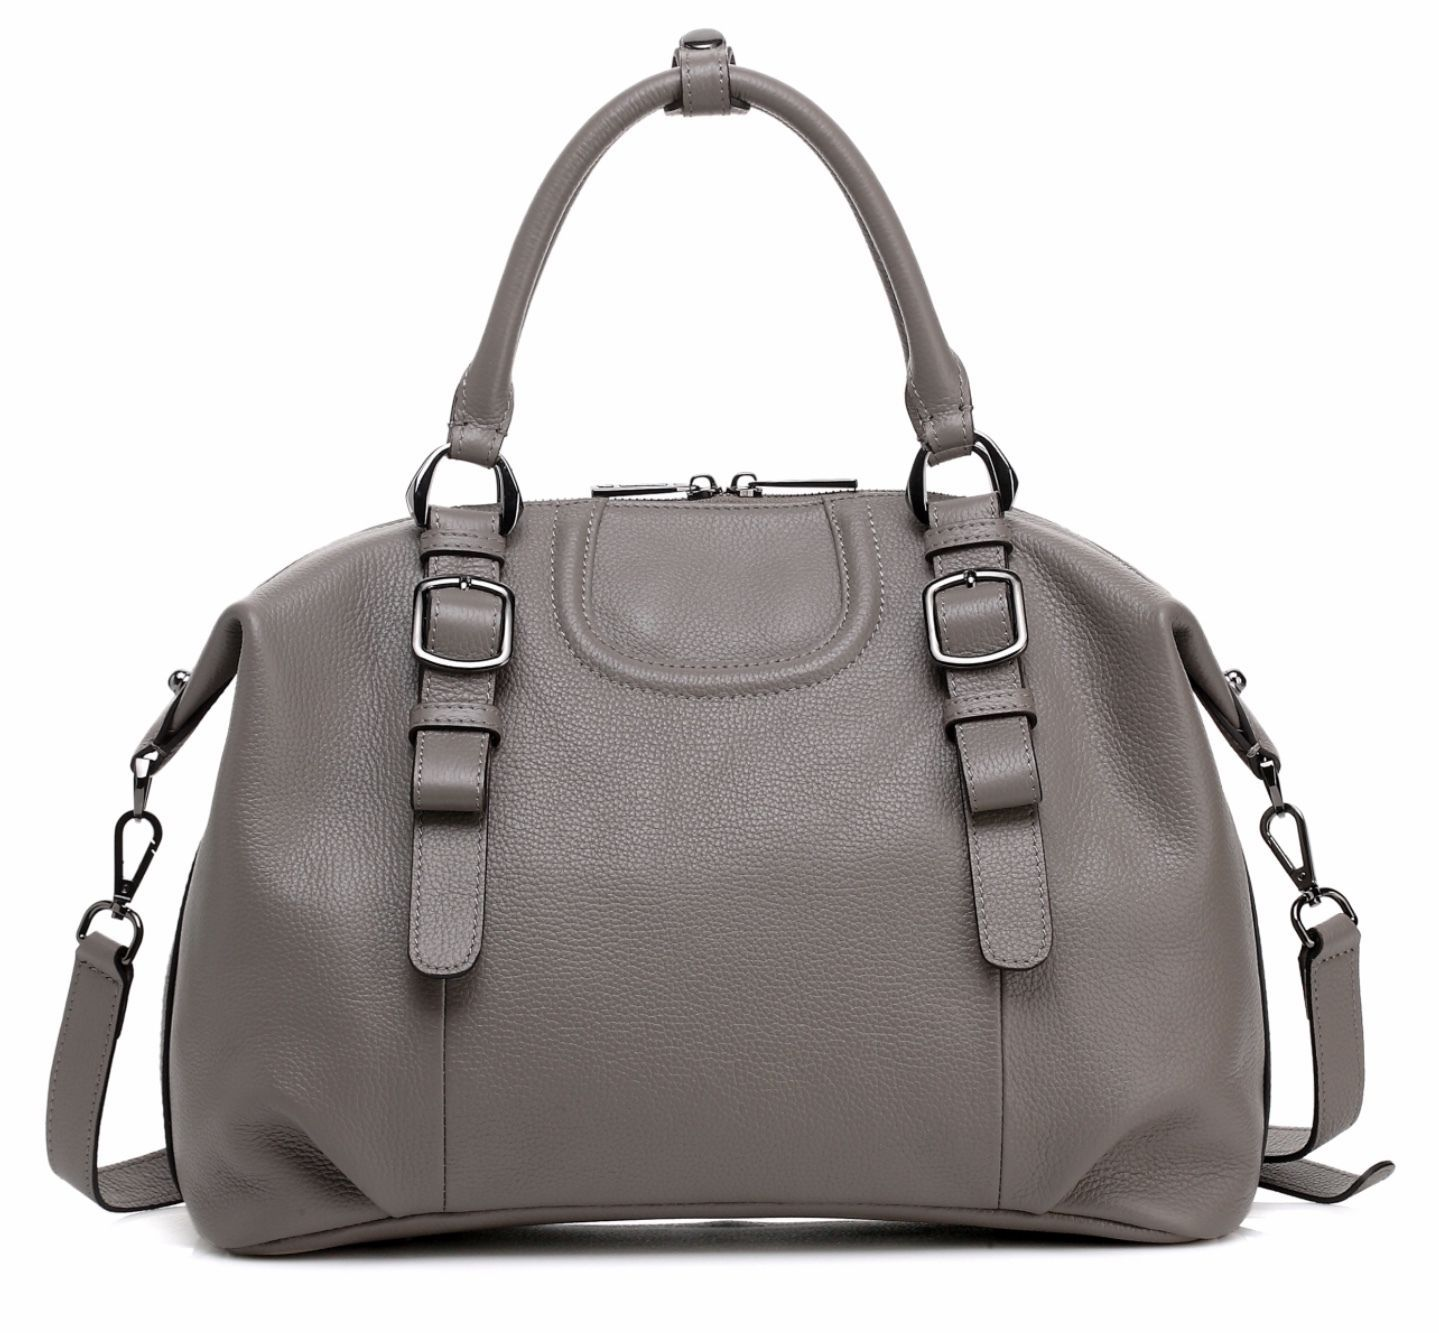 New Gray Pebbled Italian Leather Handbag Satchel Shoulder Bag